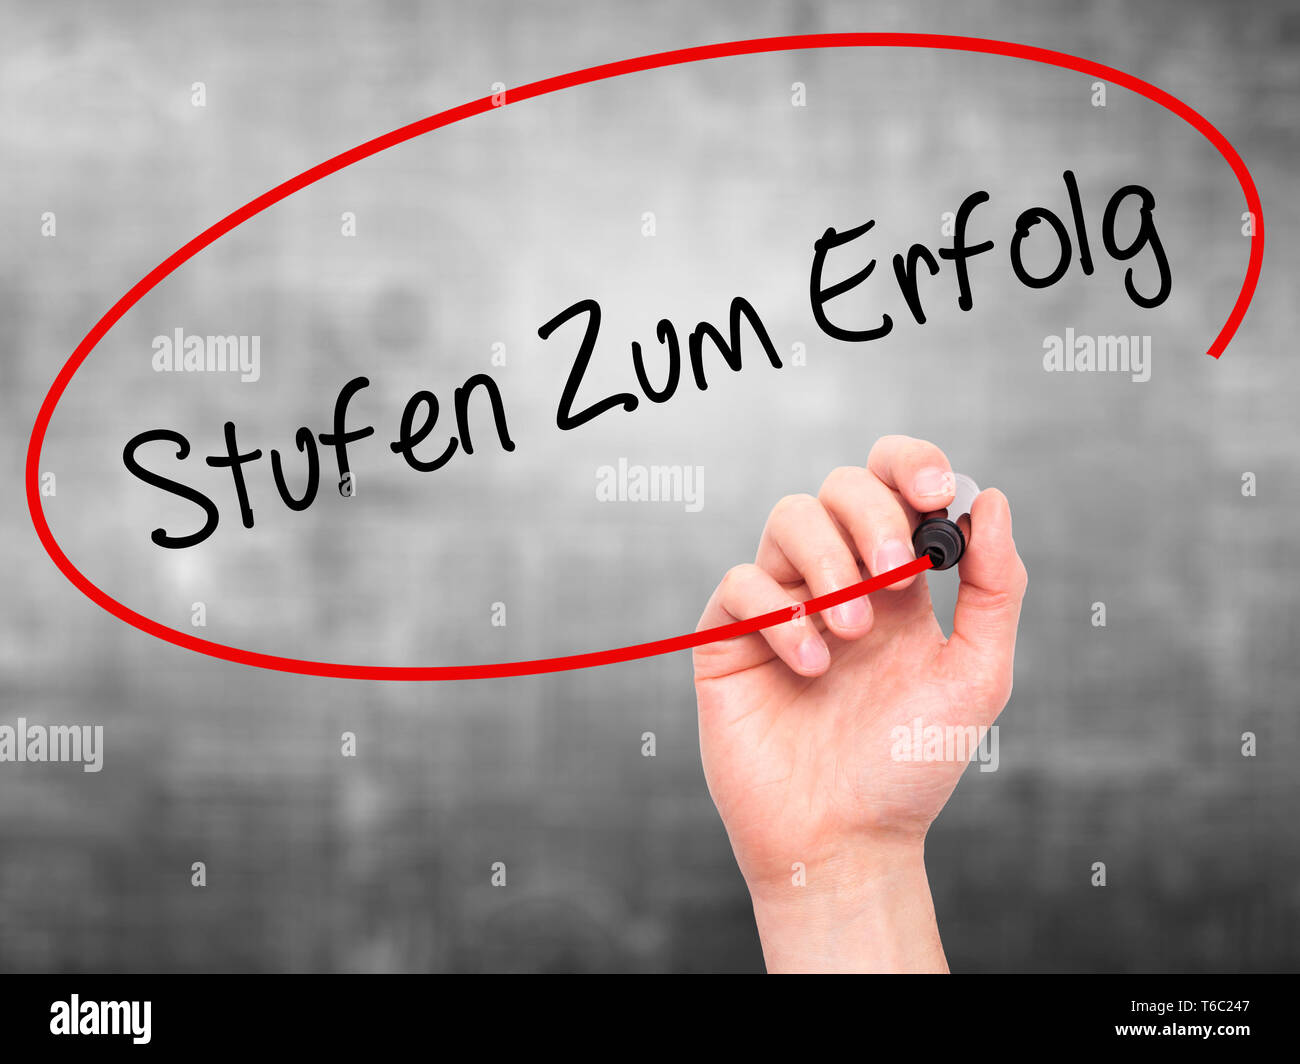 Man Hand writing Stufen Zum Erfolg (Steps to Success in German) with black marker on visual screen - Stock Image